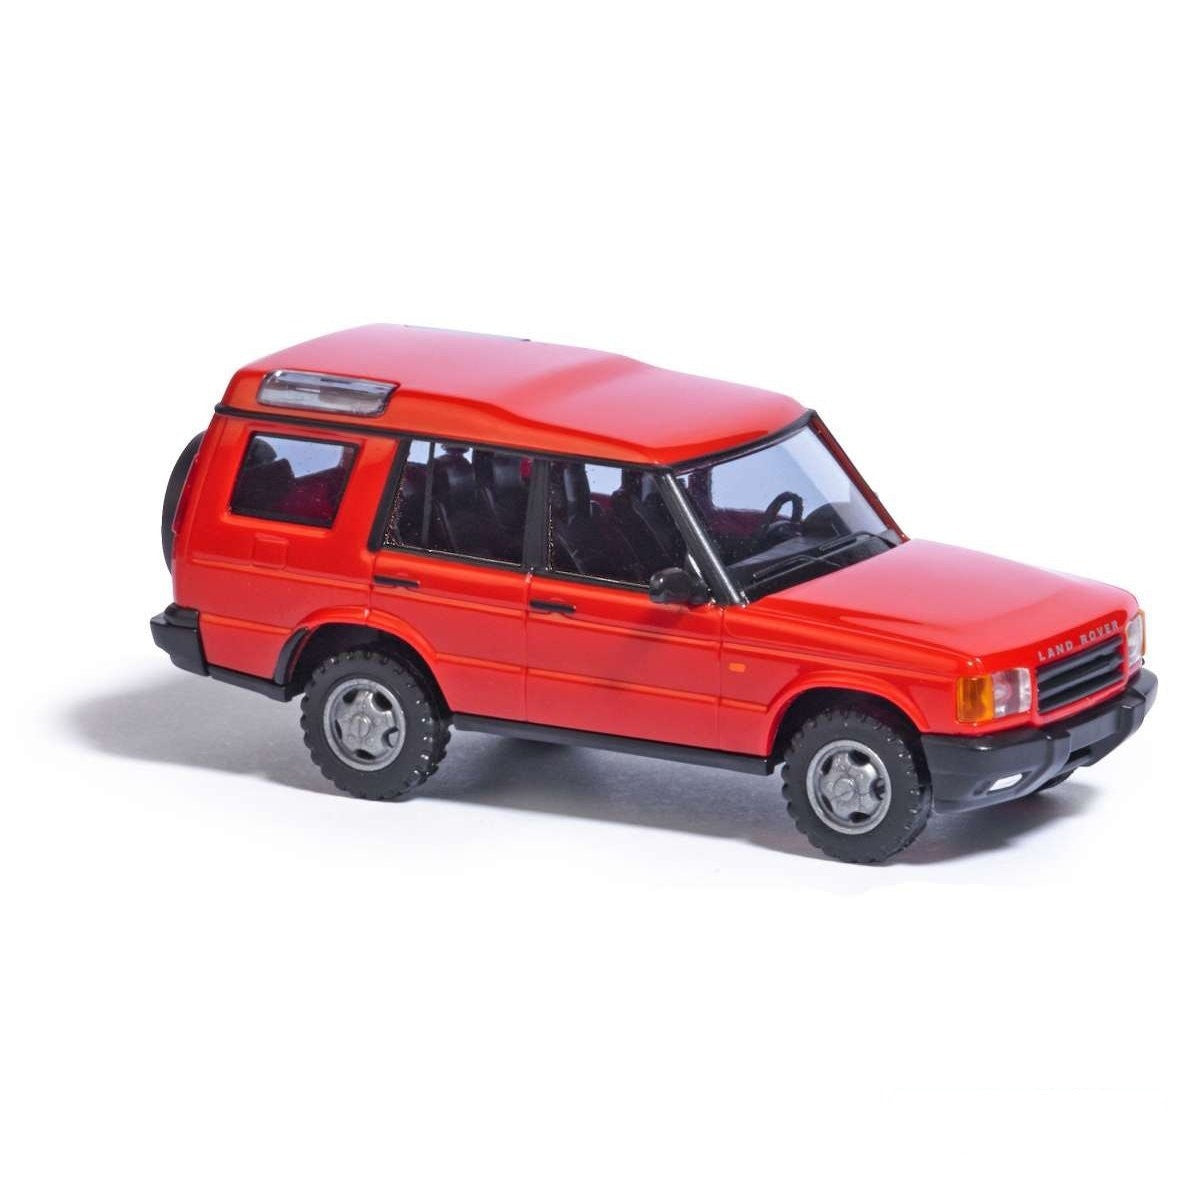 1998 Land Rover Discovery LE Rioja Red Metallic / Bahama ... |Red 1998 Land Rover